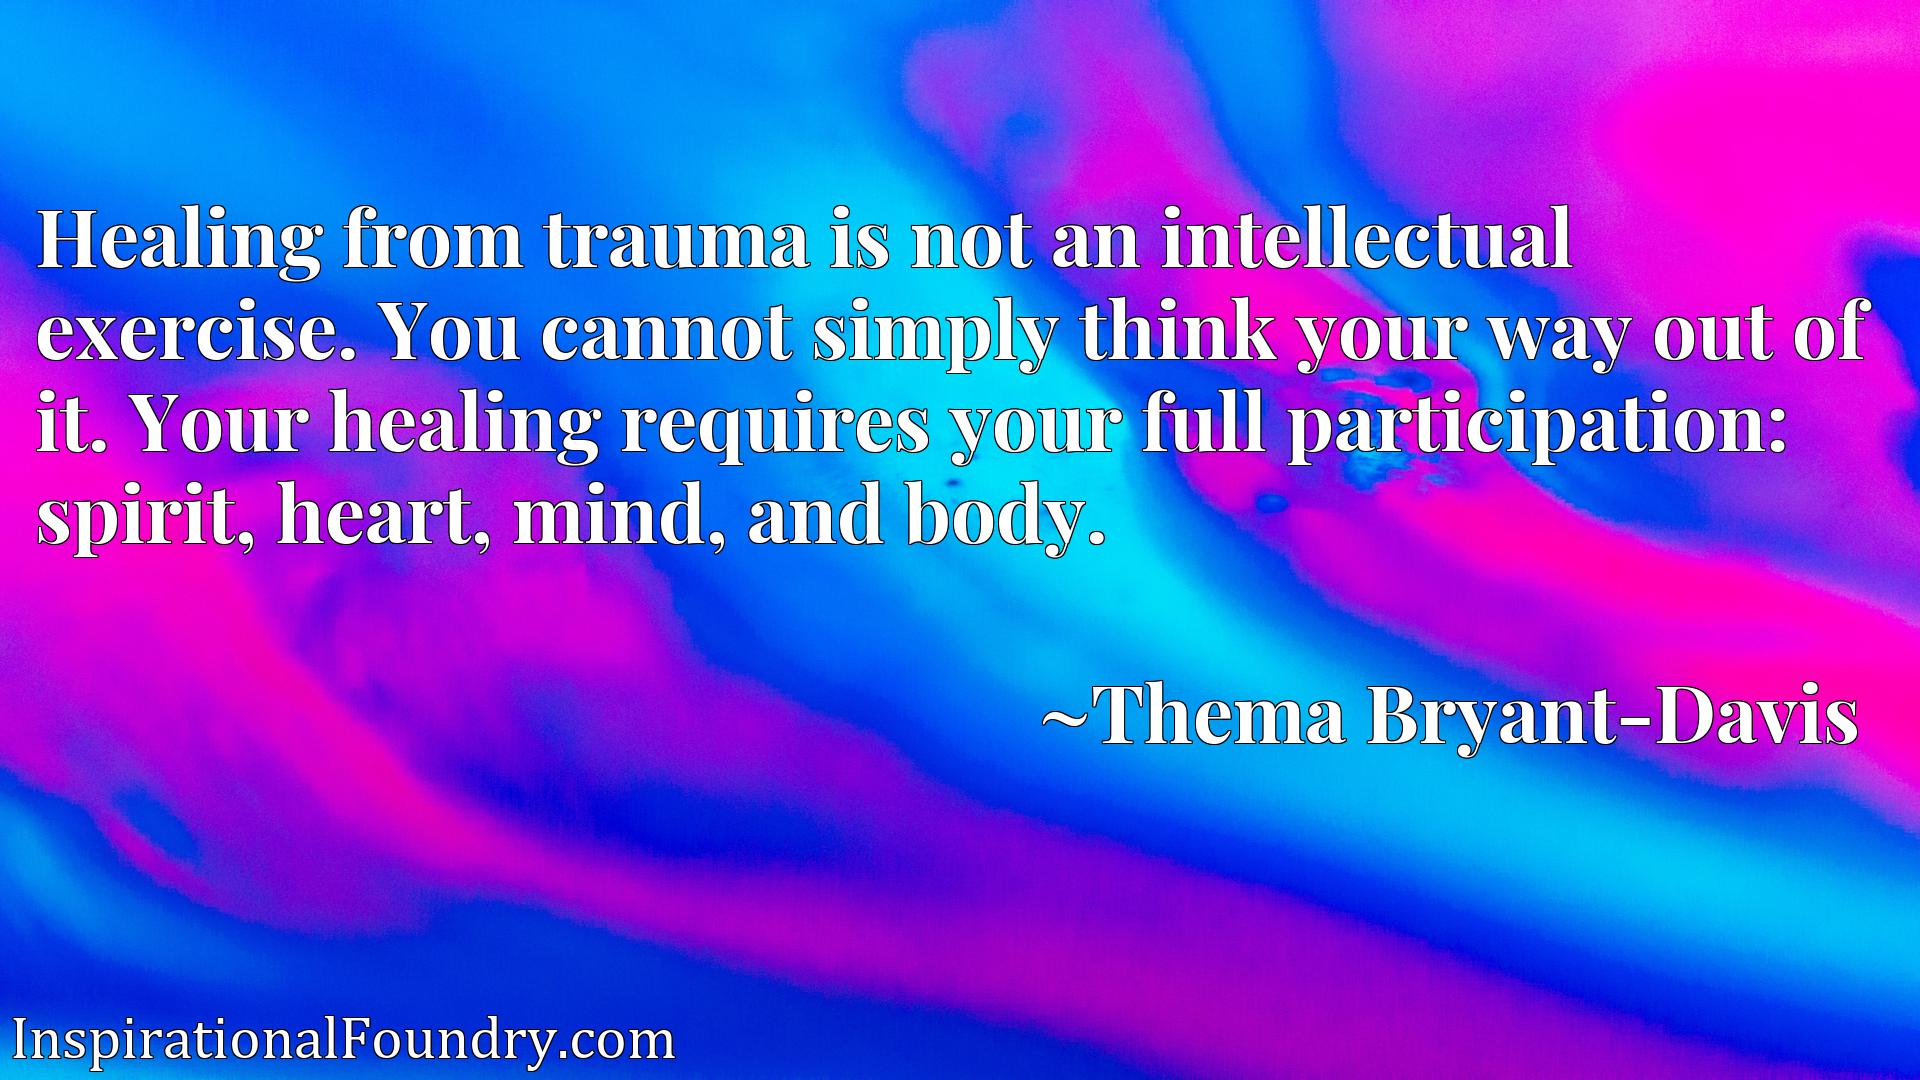 Healing from trauma is not an intellectual exercise. You cannot simply think your way out of it. Your healing requires your full participation: spirit, heart, mind, and body.